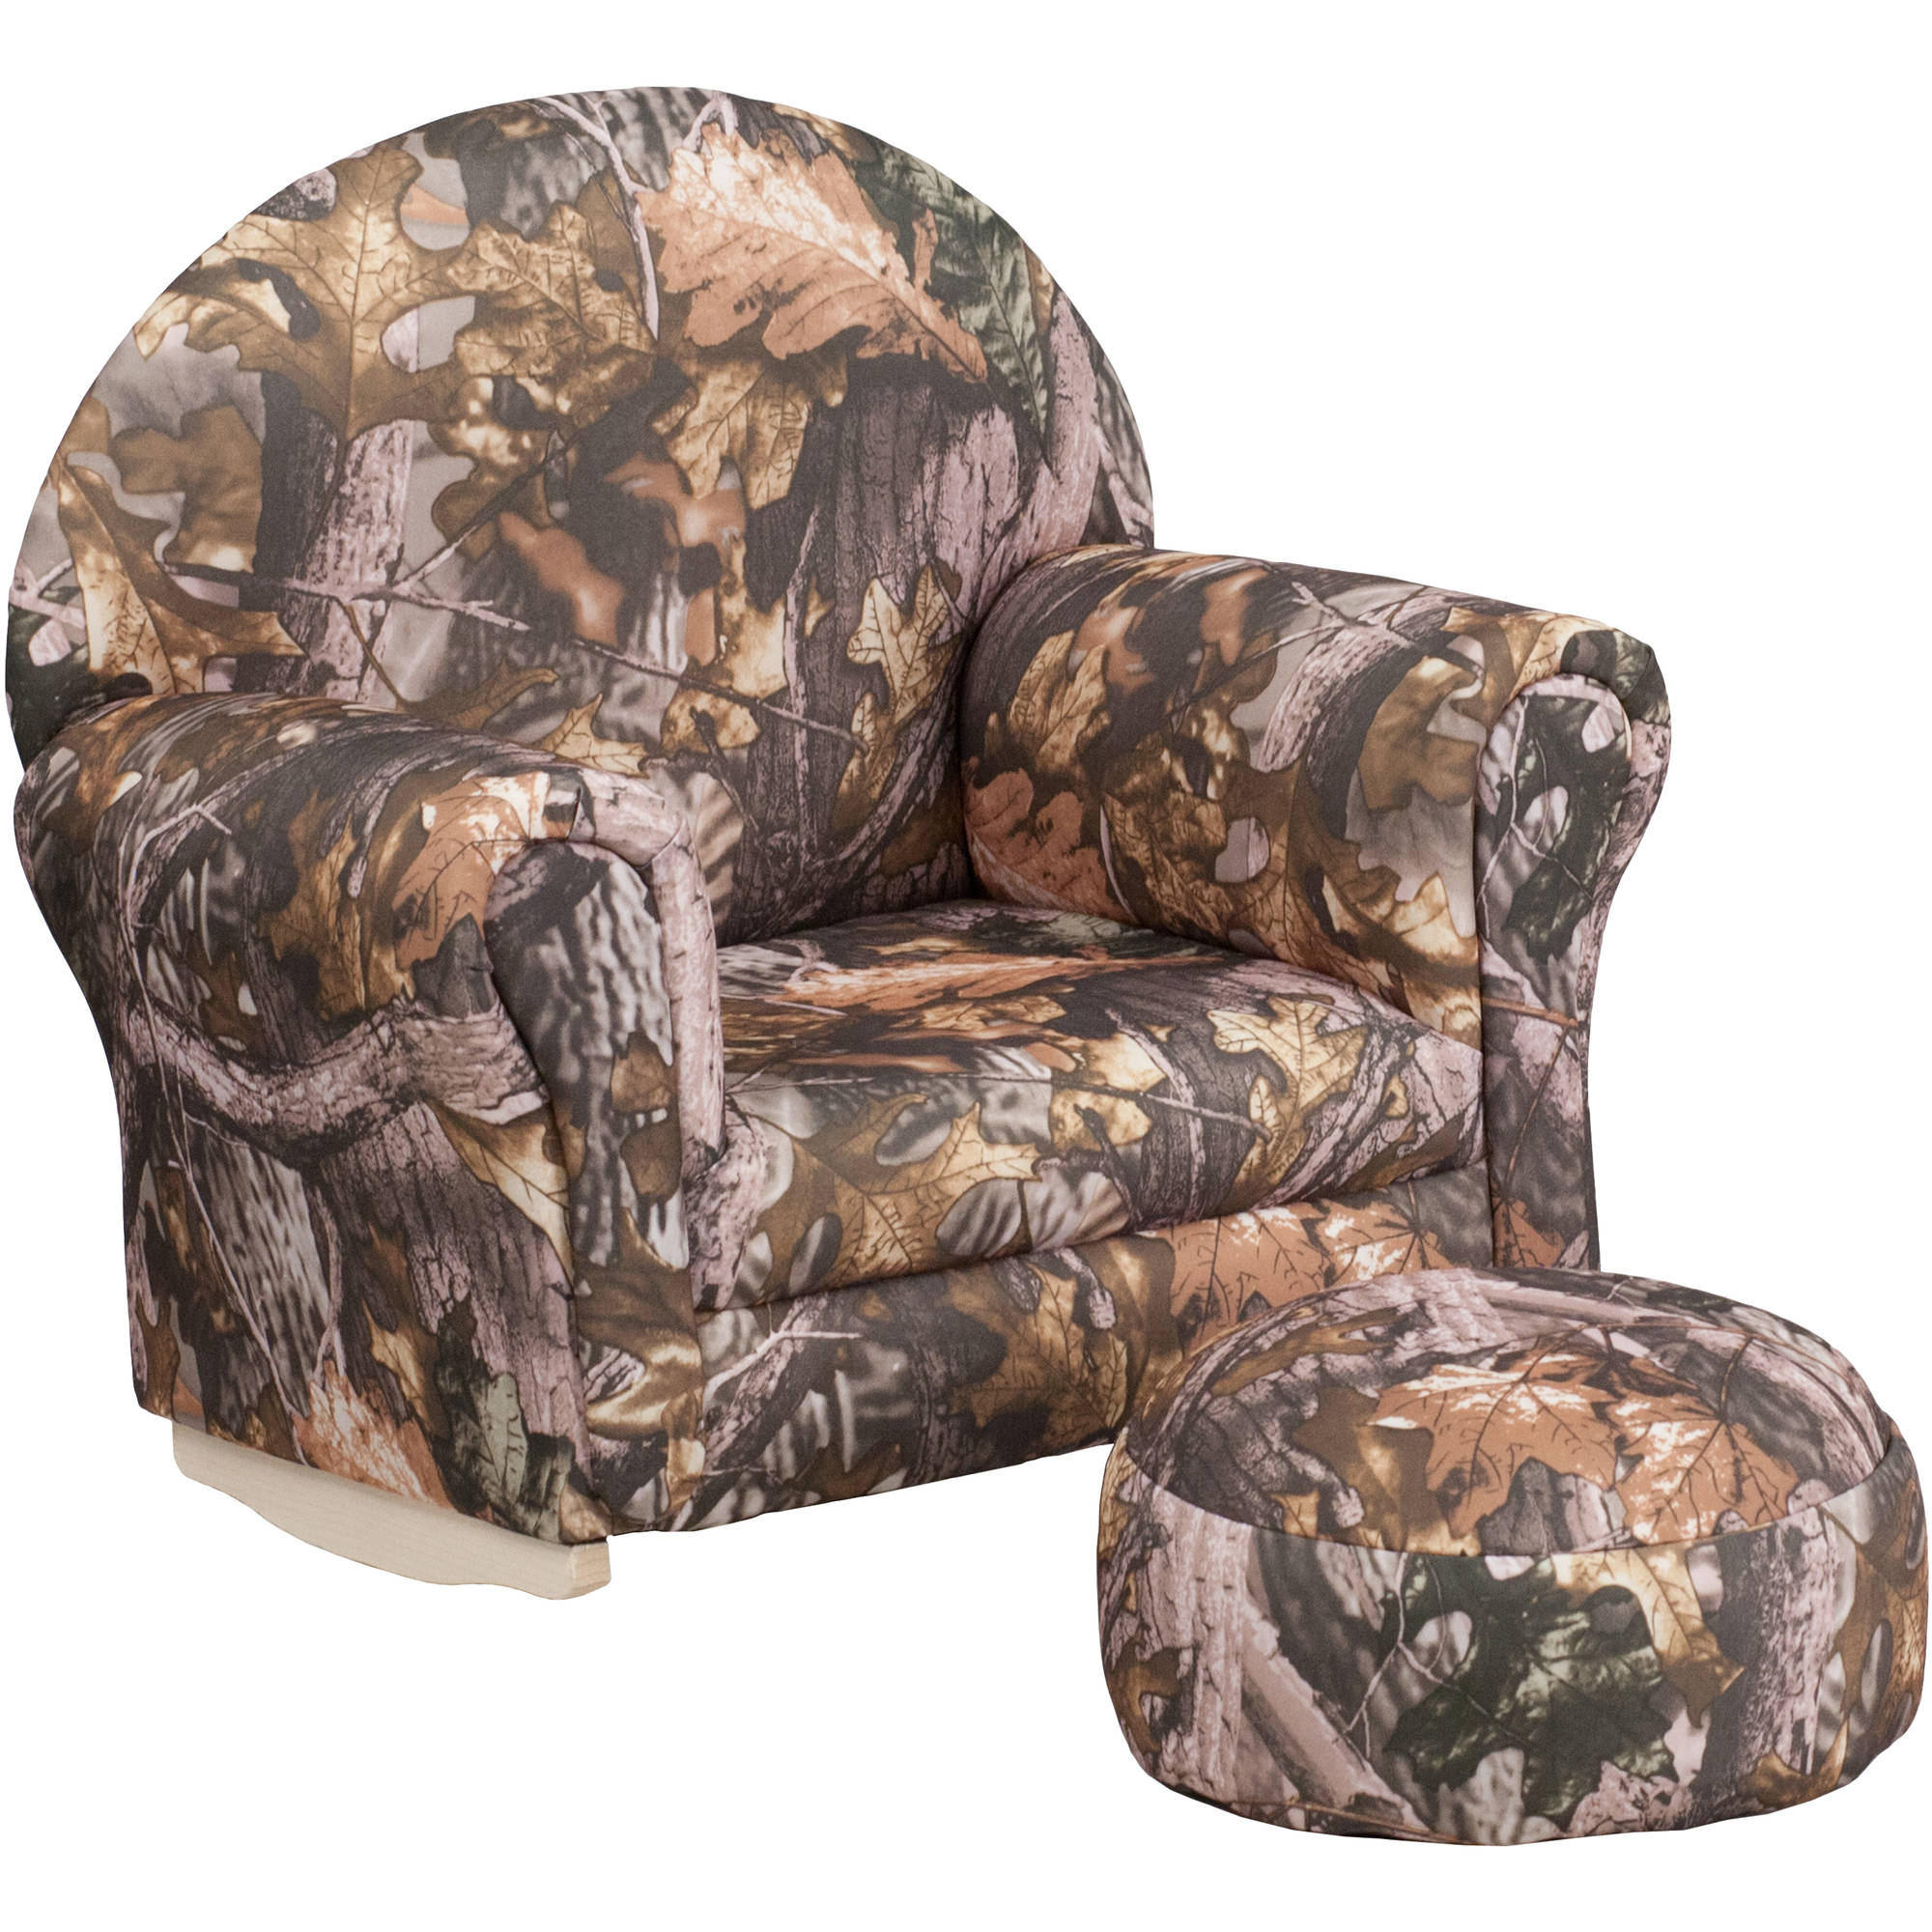 Beautiful Flash Furniture Kids Camouflage Fabric Rocker Chair And Footrest